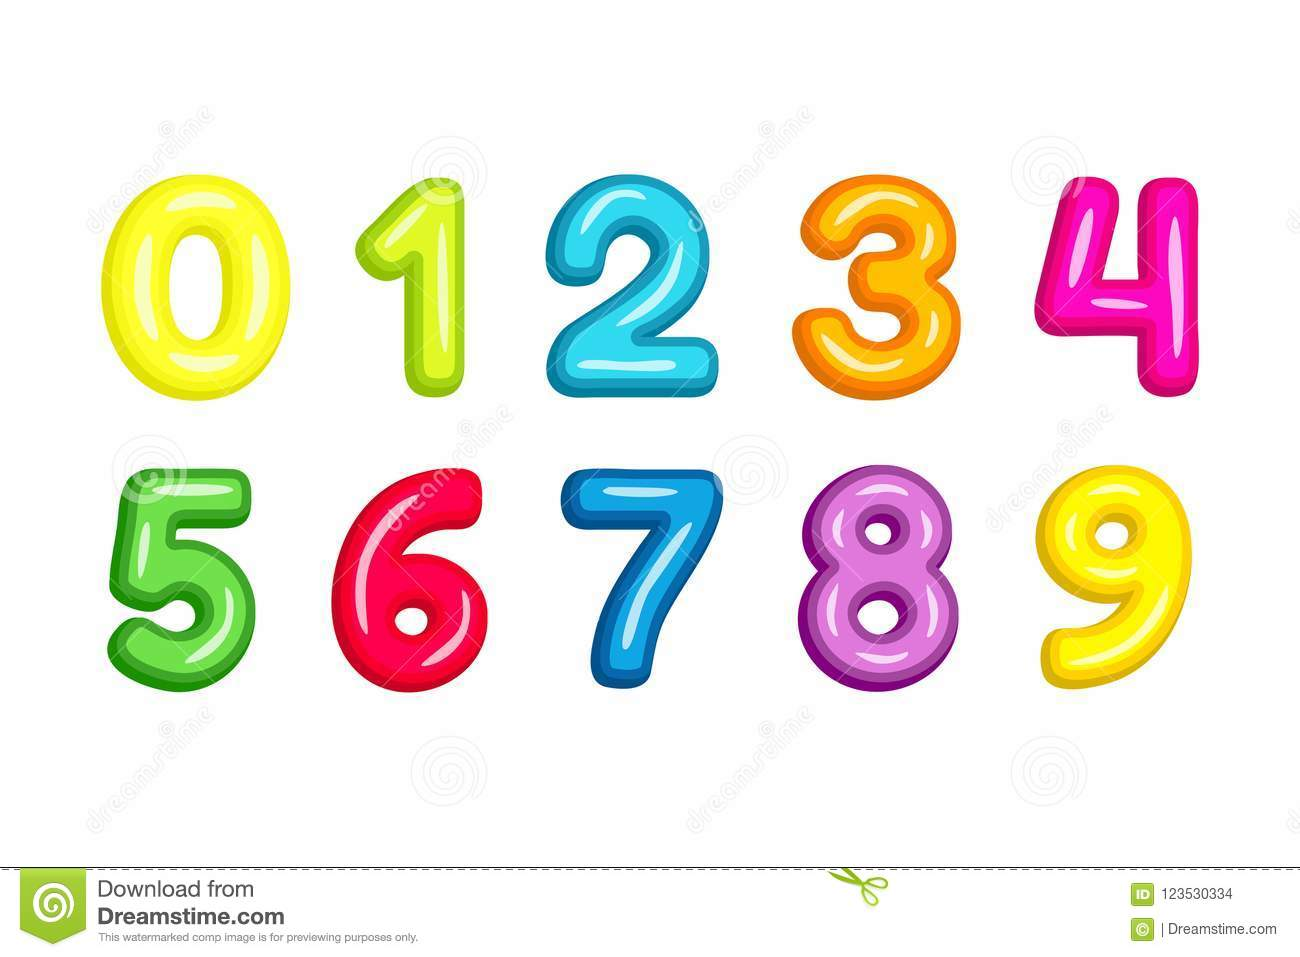 Colorful kid font numbers vector illustration isolated on white